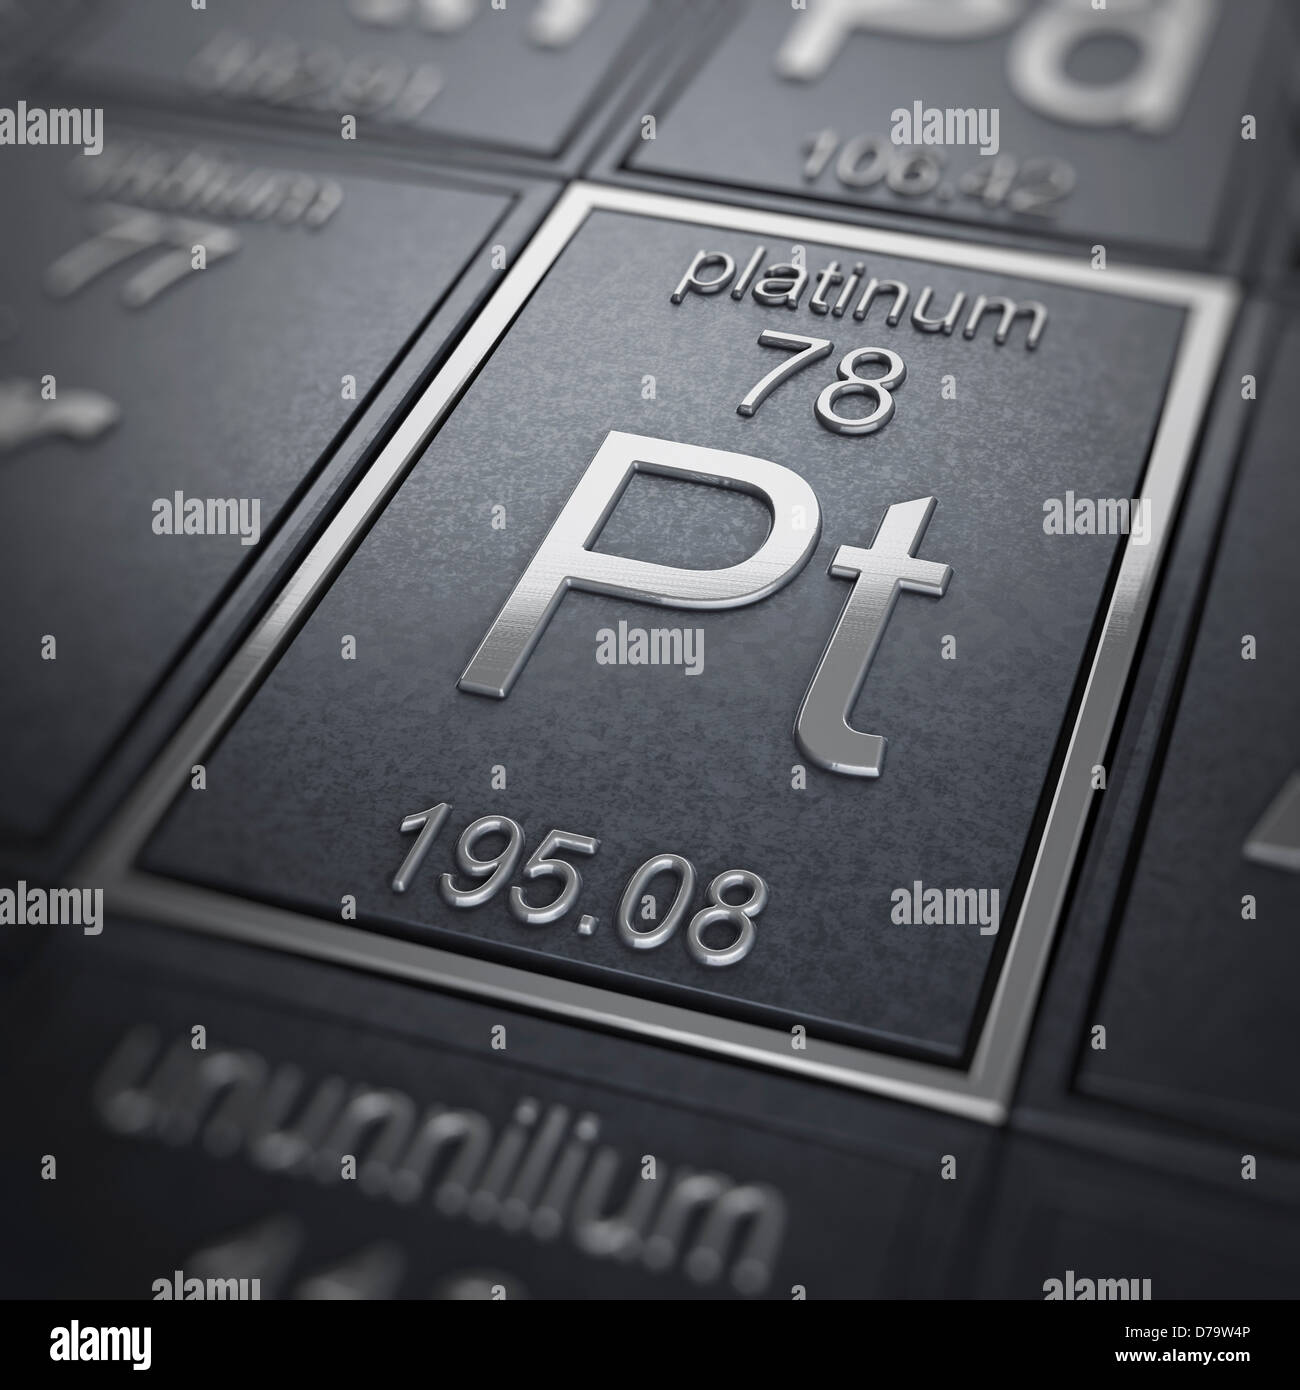 stock element of platinum design protons d render image illustration